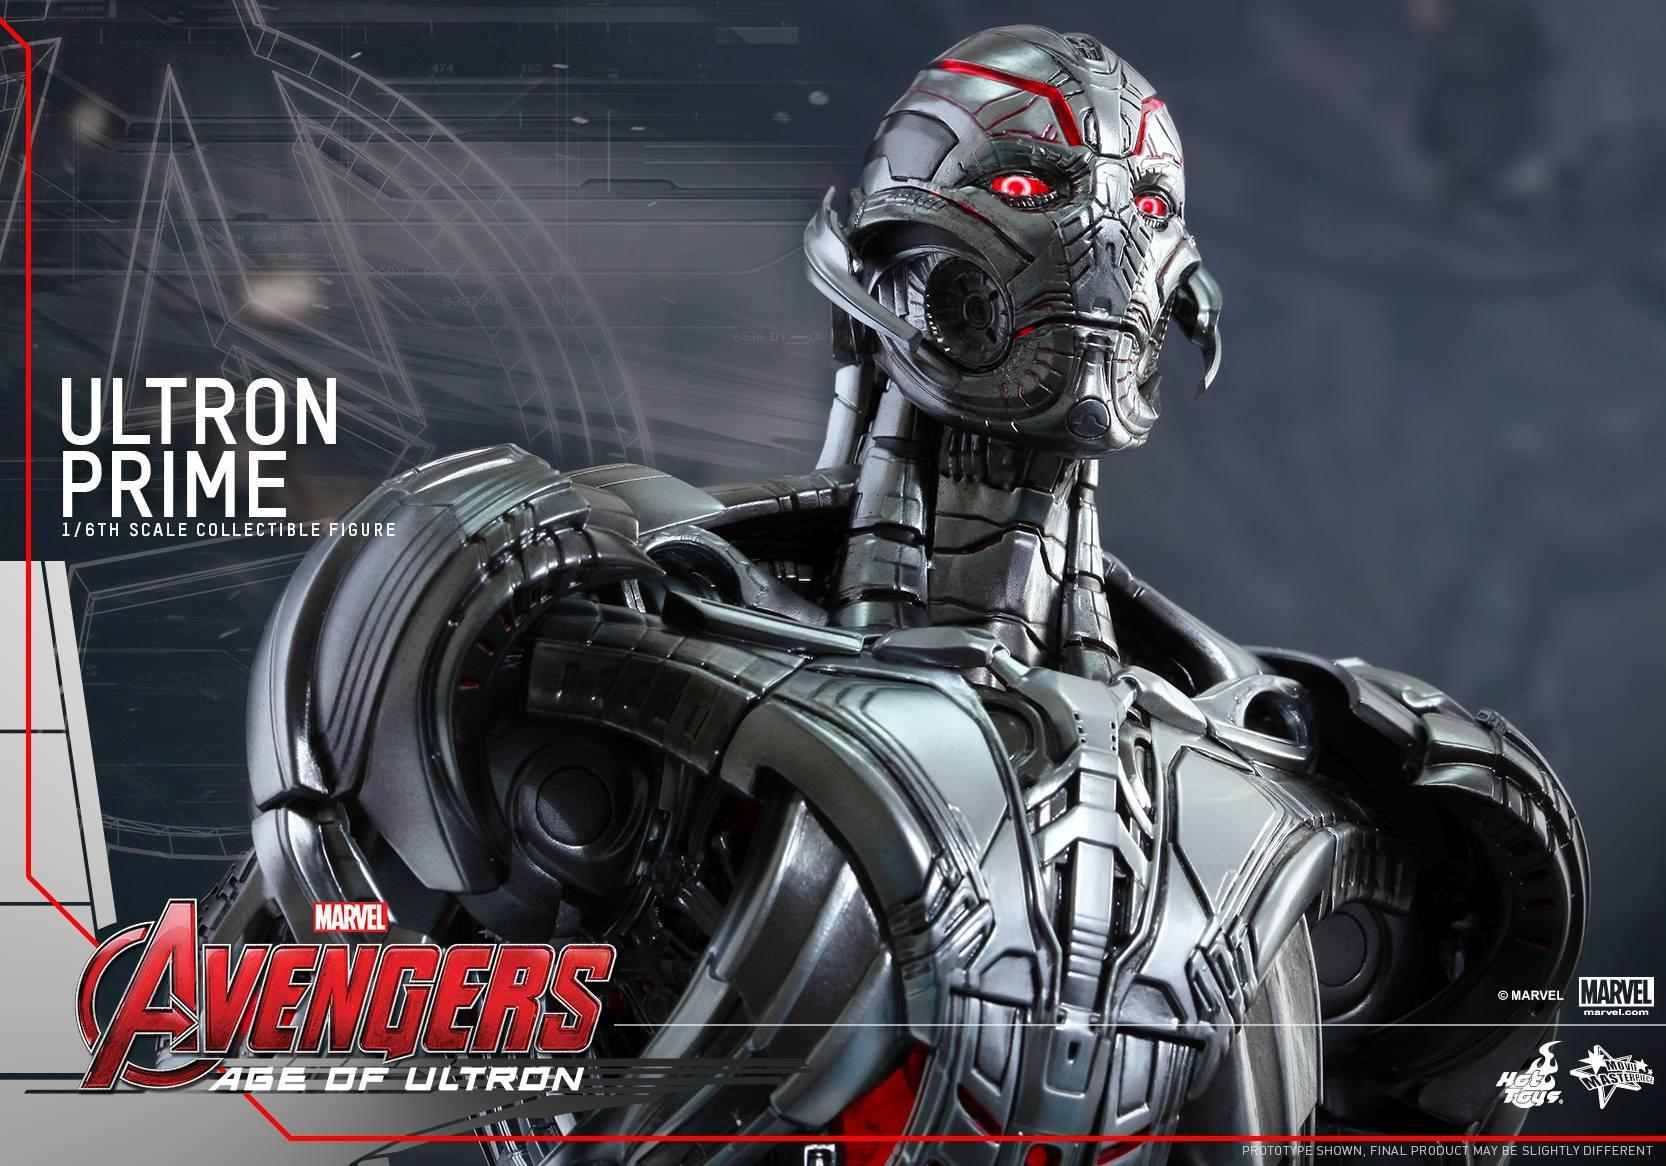 Who rips out ultron's heart?